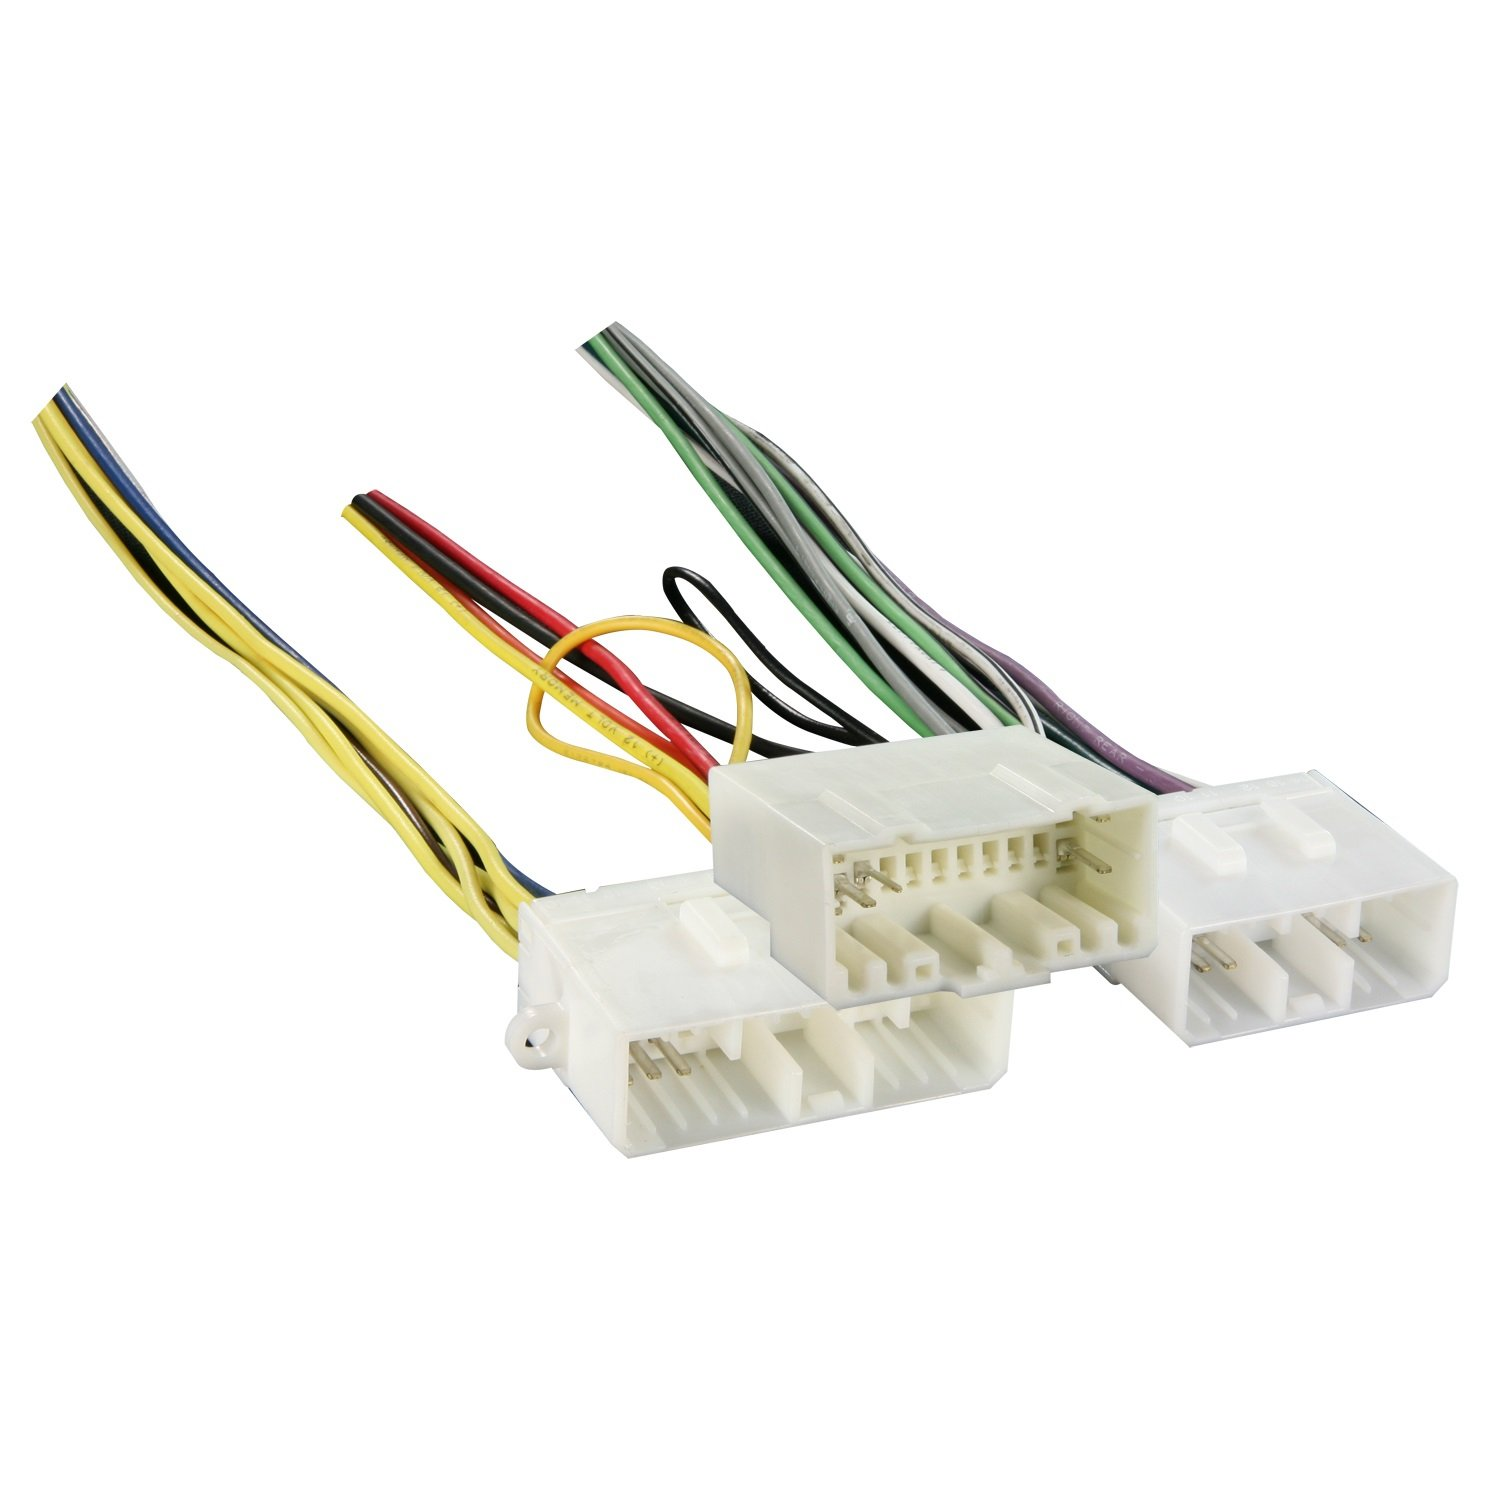 hight resolution of metra 70 6510 wiring harness for select 2002 2004 dodge ram with infiniti system walmart com